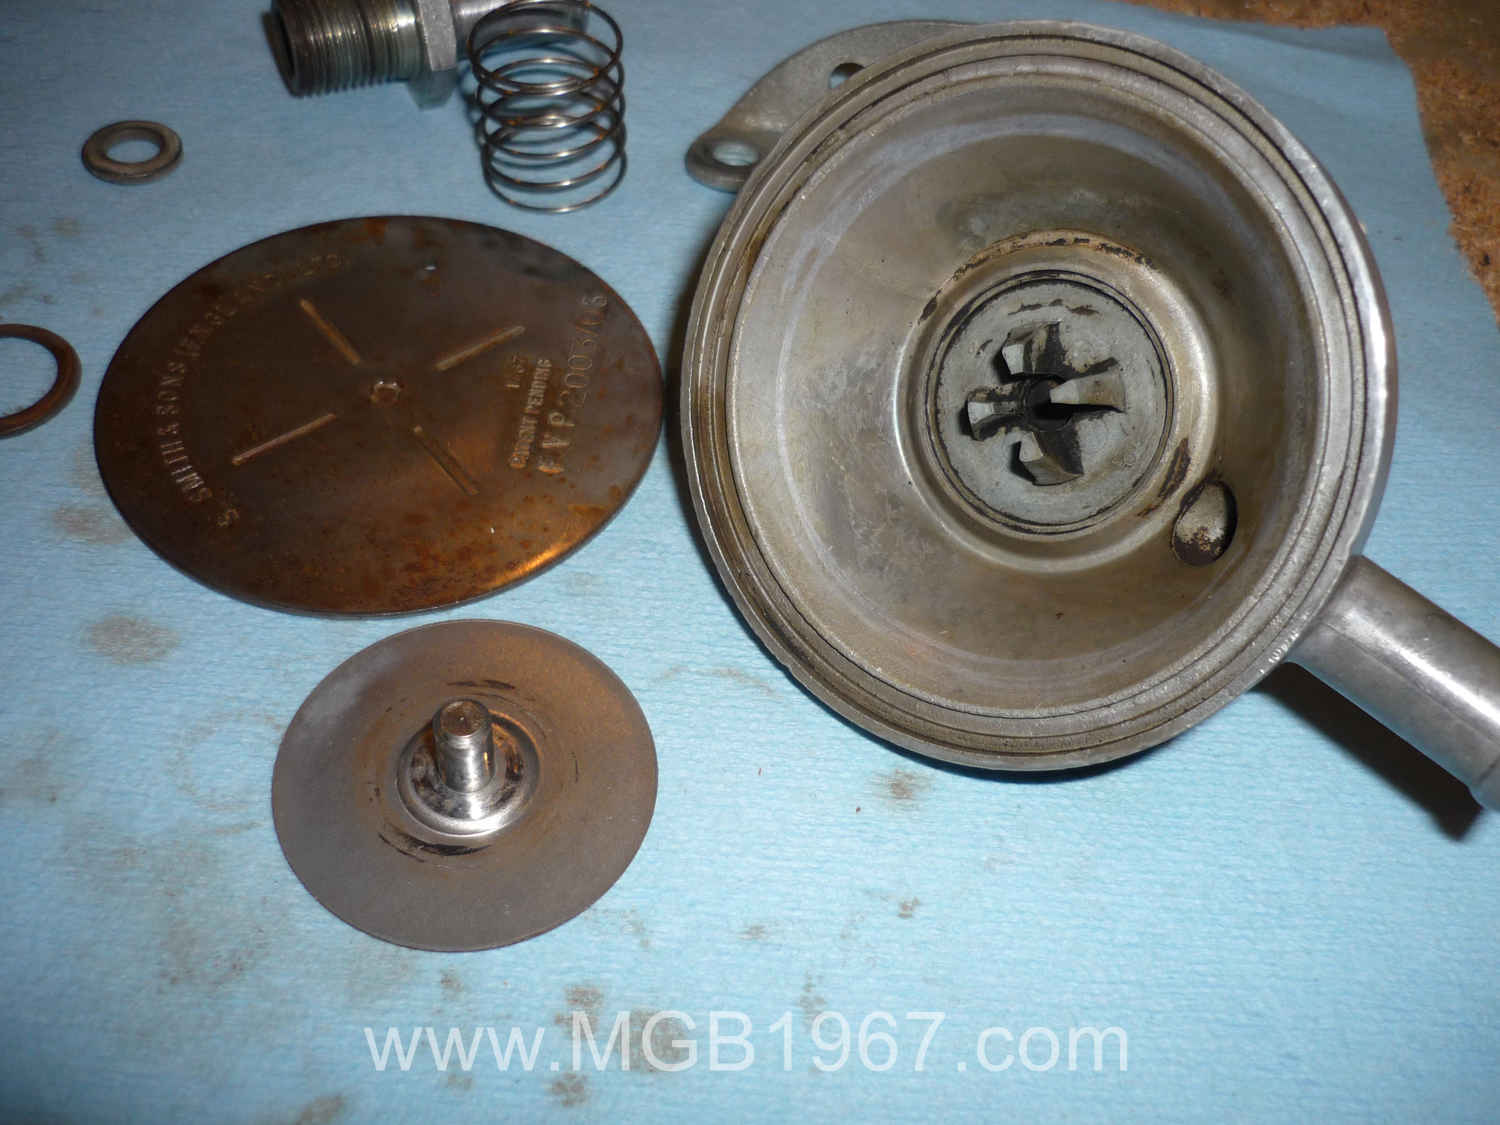 Cleaned MGB crankcase ventilation valve